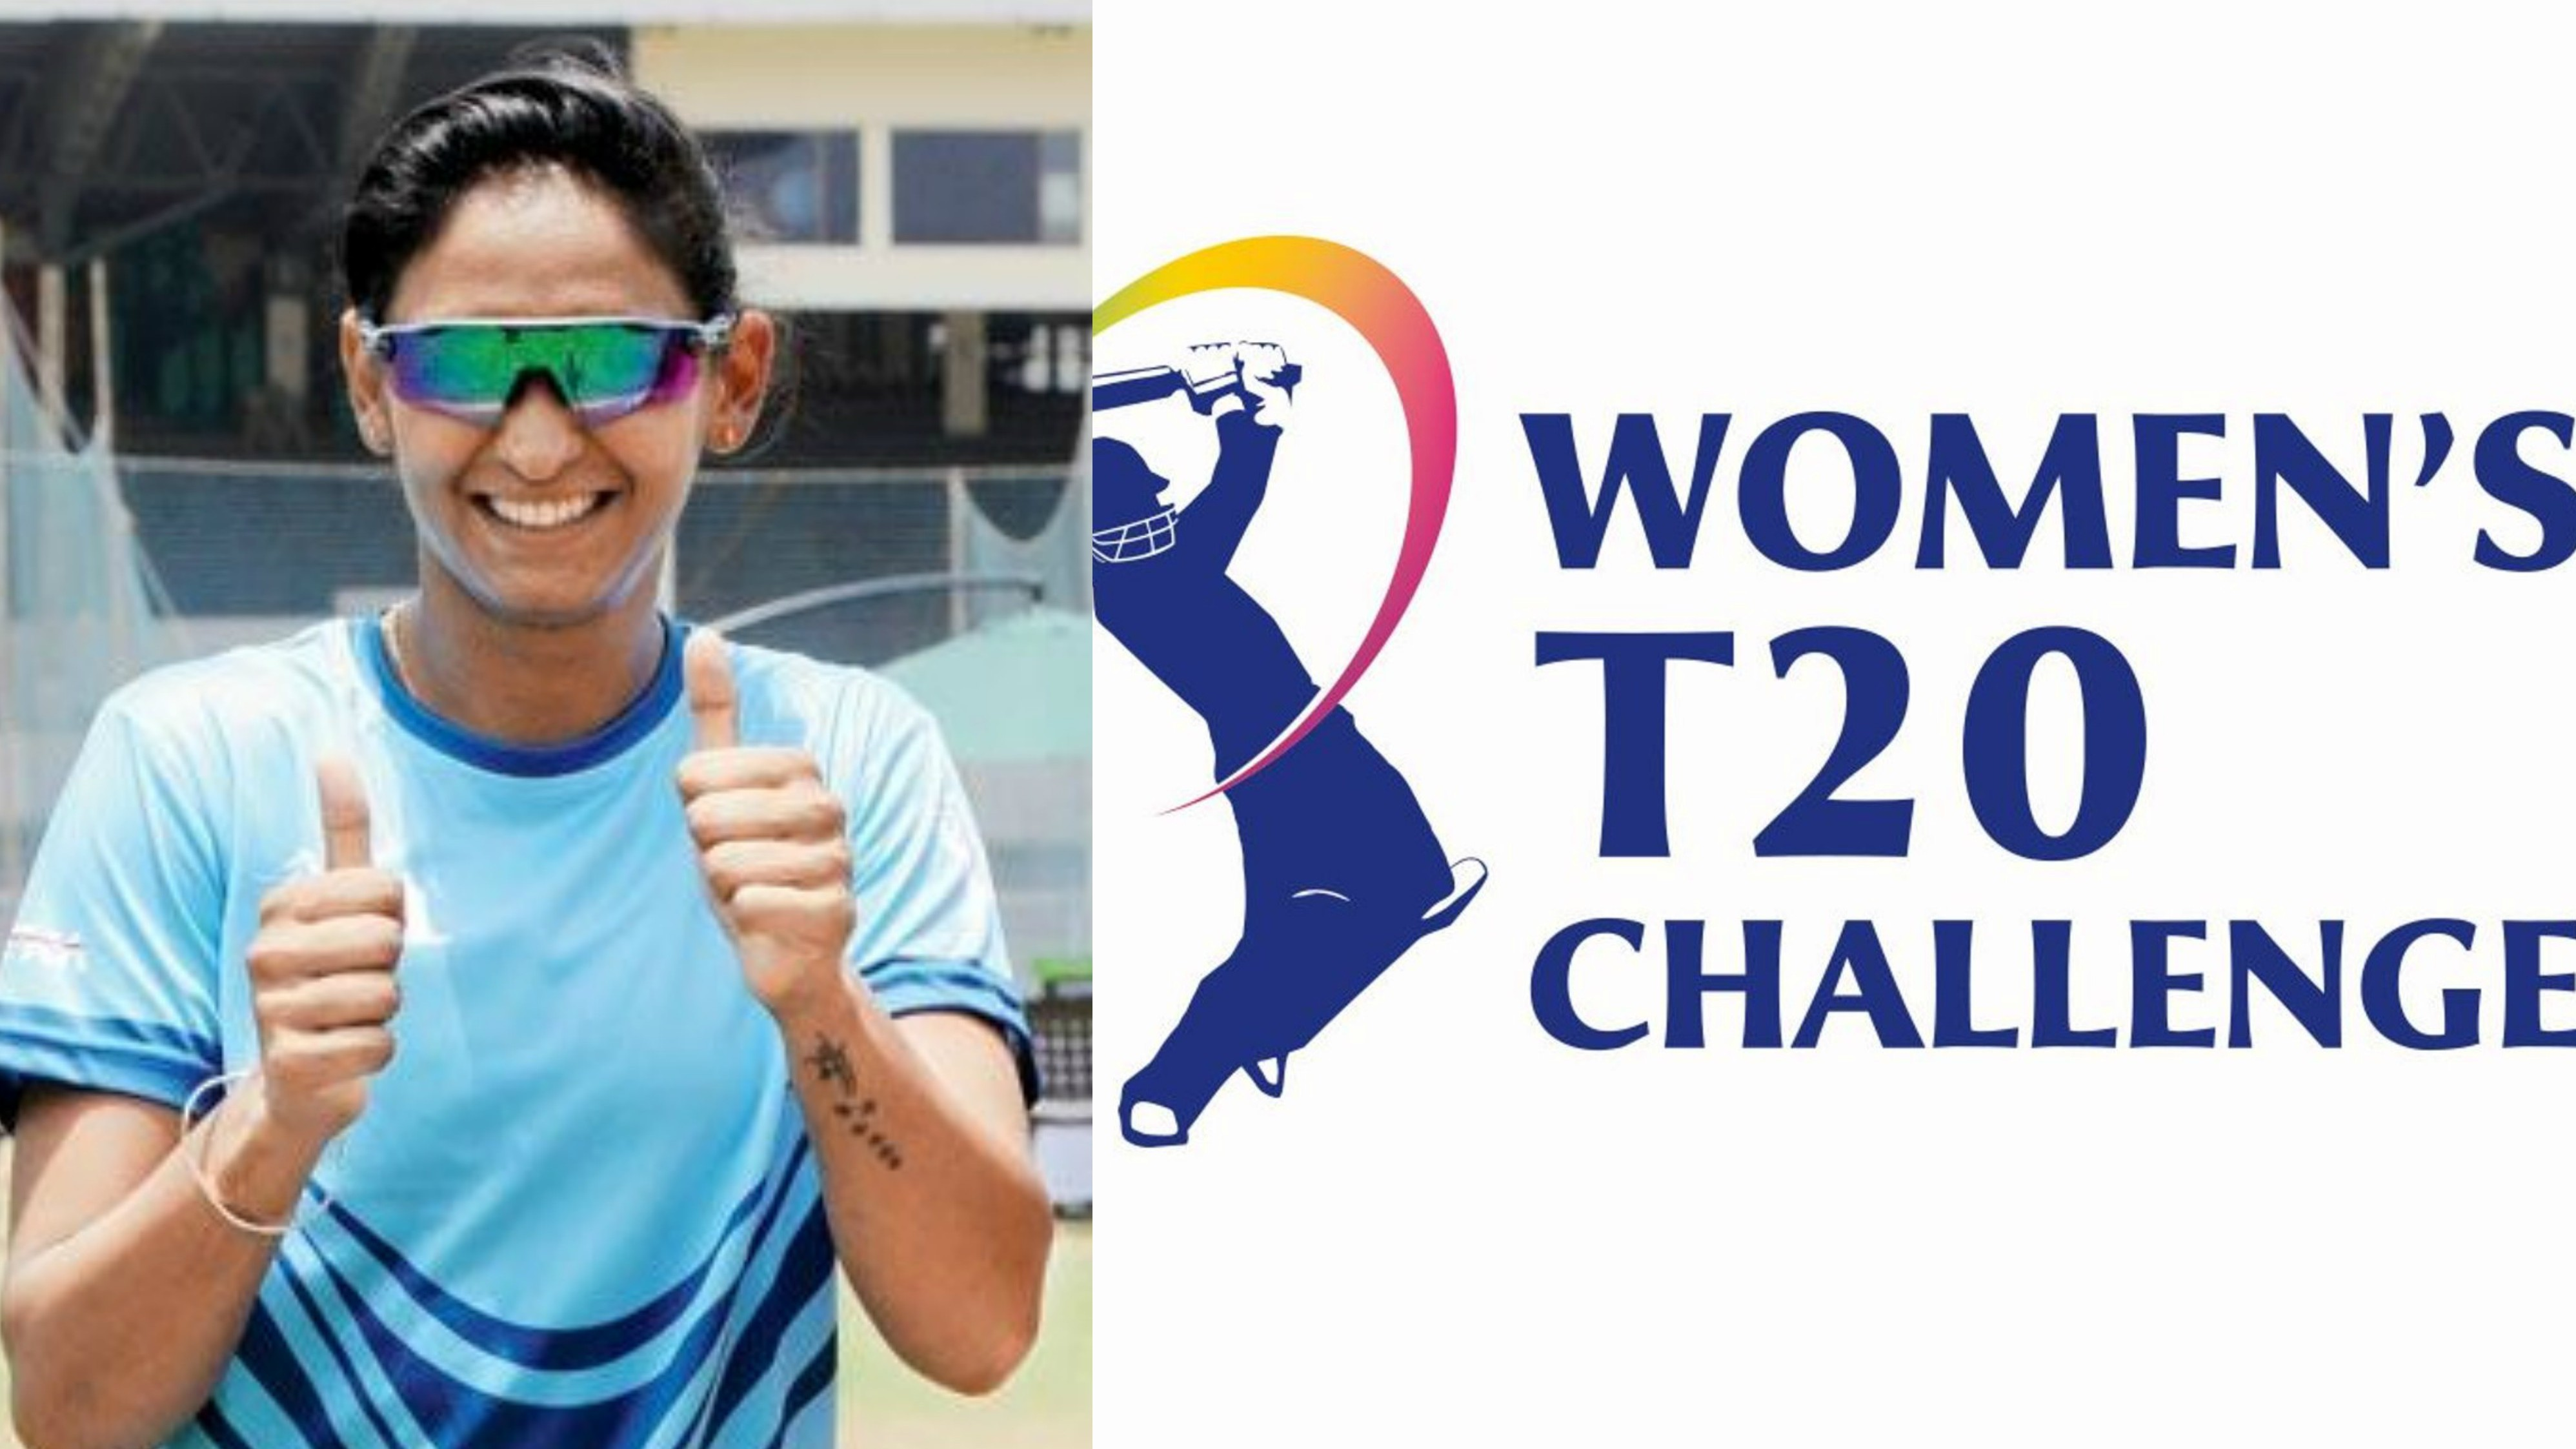 Harmanpreet Kaur excited for upcoming Women's T20 Challenge in UAE